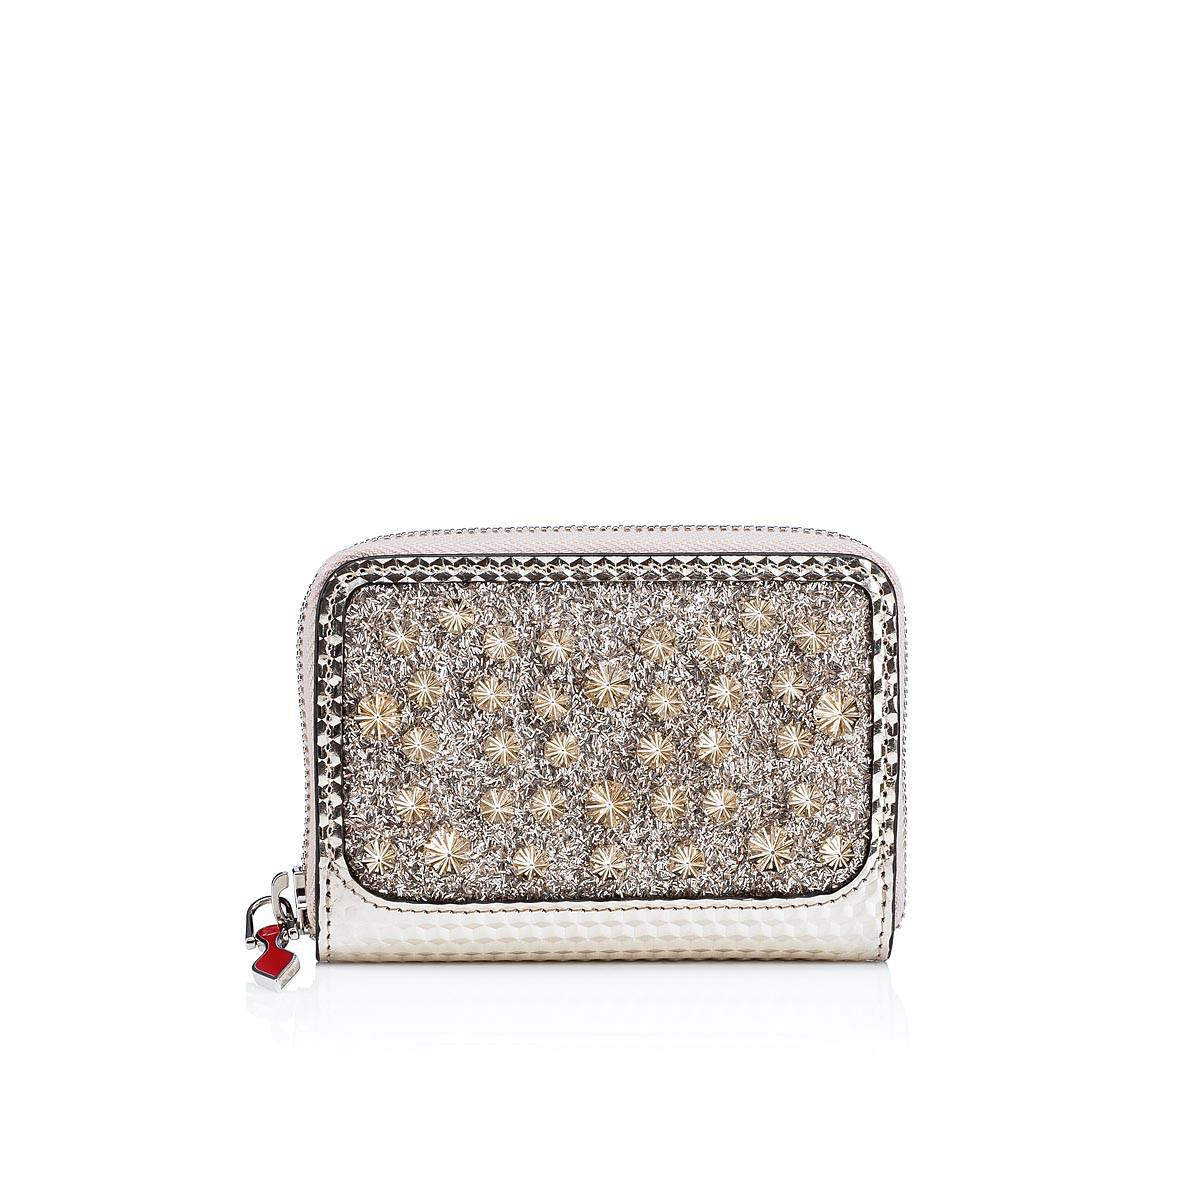 269d4c4033c Lyst - Christian Louboutin Panettone Coin Purse in White